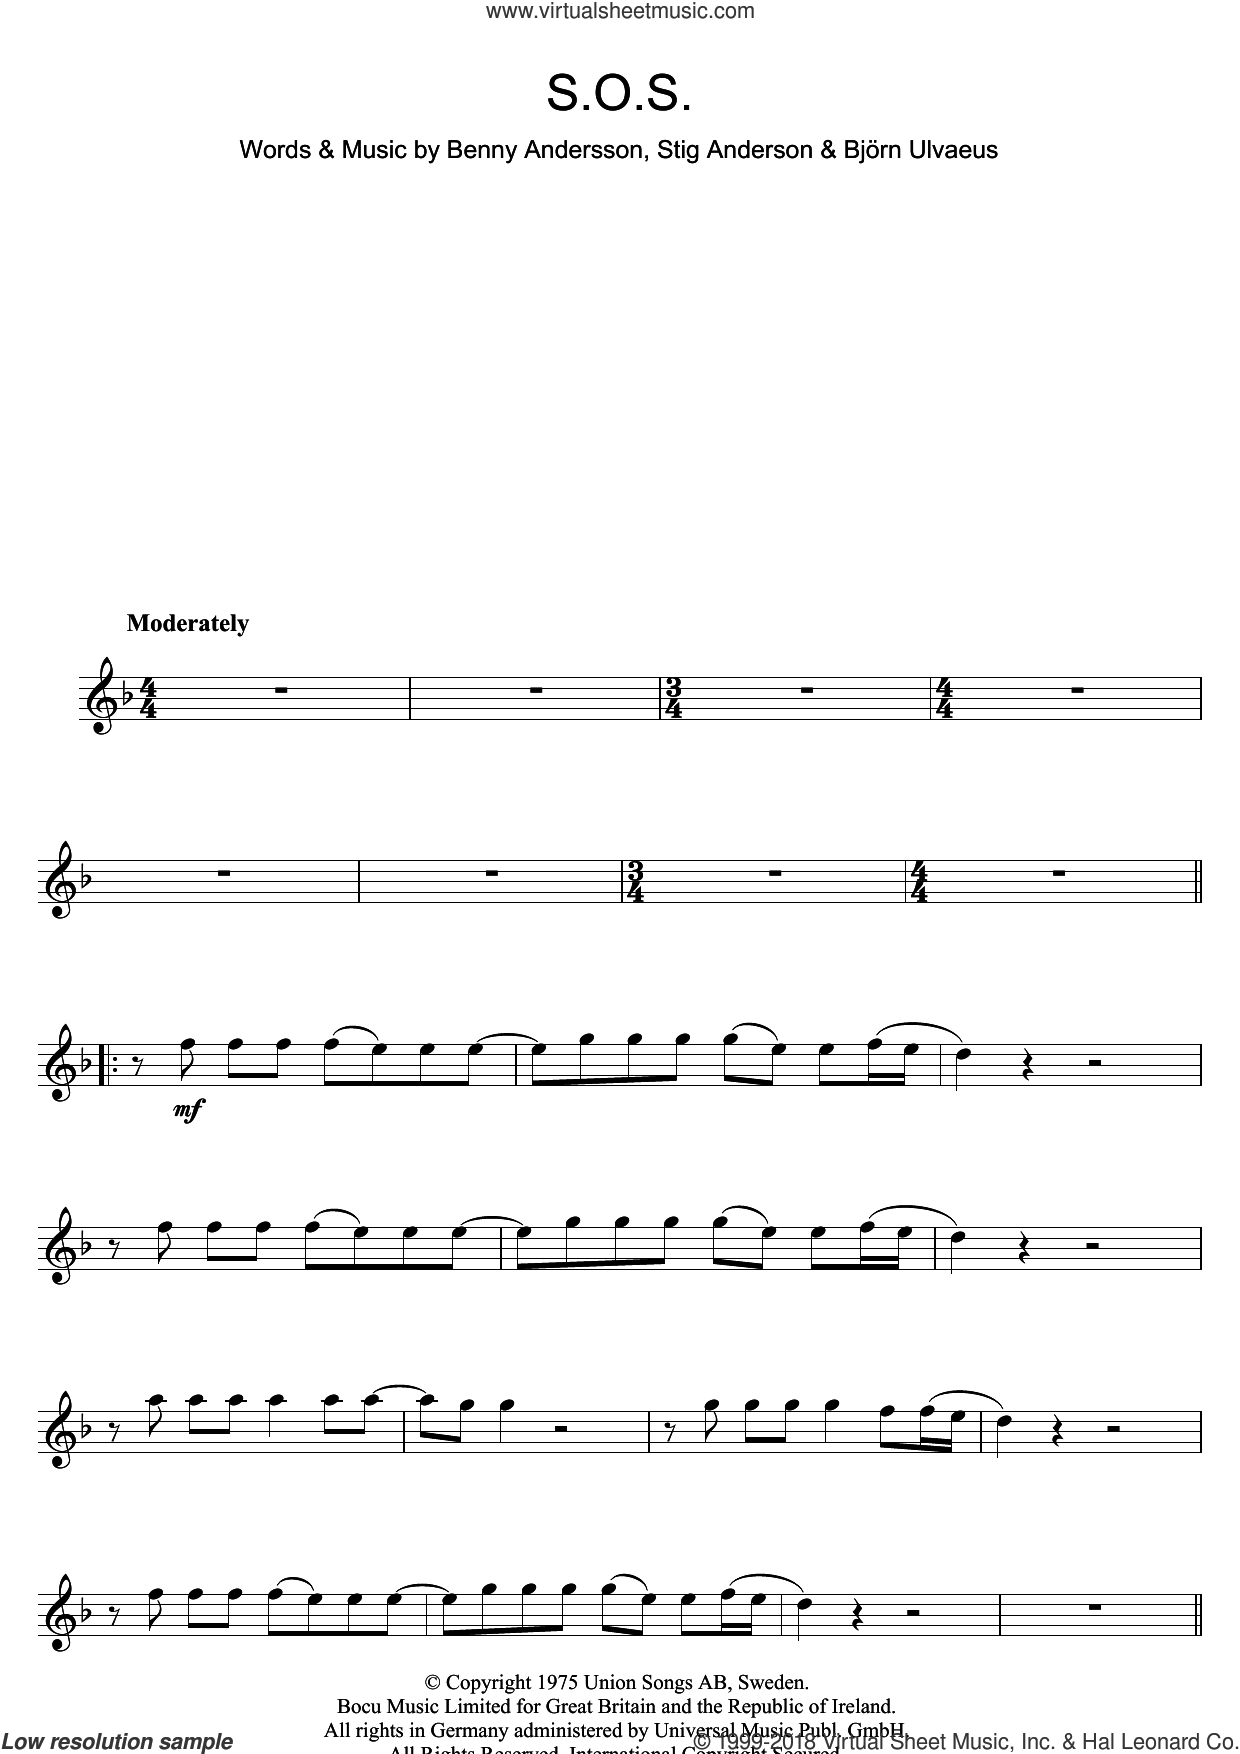 S.O.S. sheet music for flute solo by ABBA, Benny Andersson, Bjorn Ulvaeus and Stig Anderson, intermediate skill level